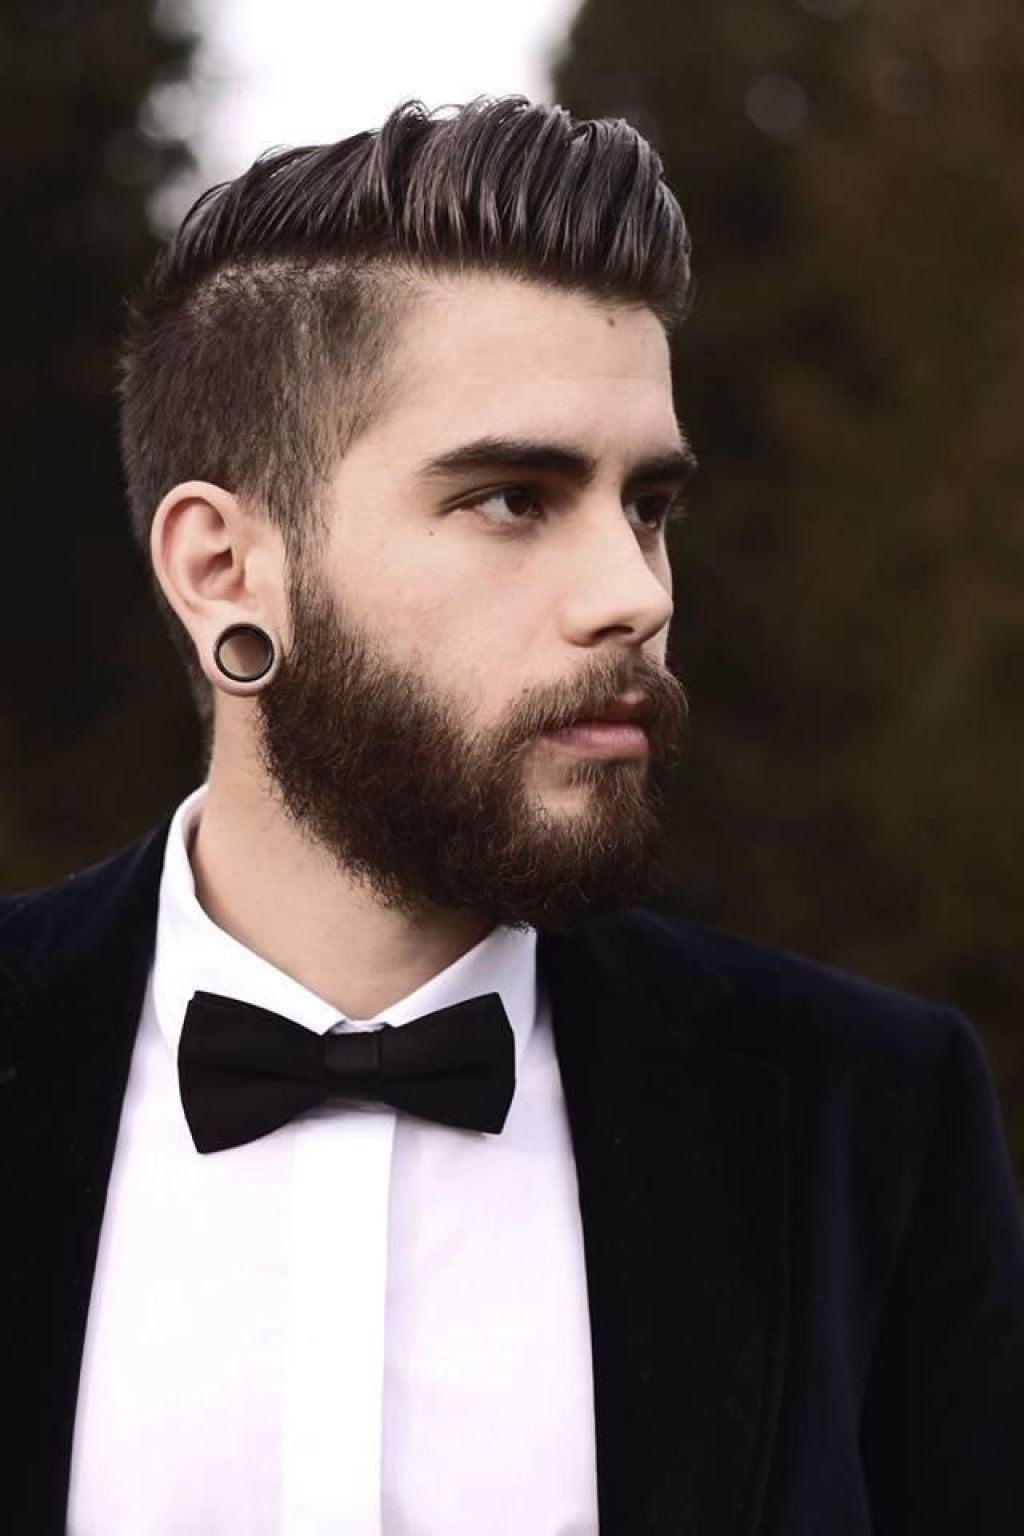 Hipster Haircuts Men 2015 Undercut Style With Big Ear Piercings And